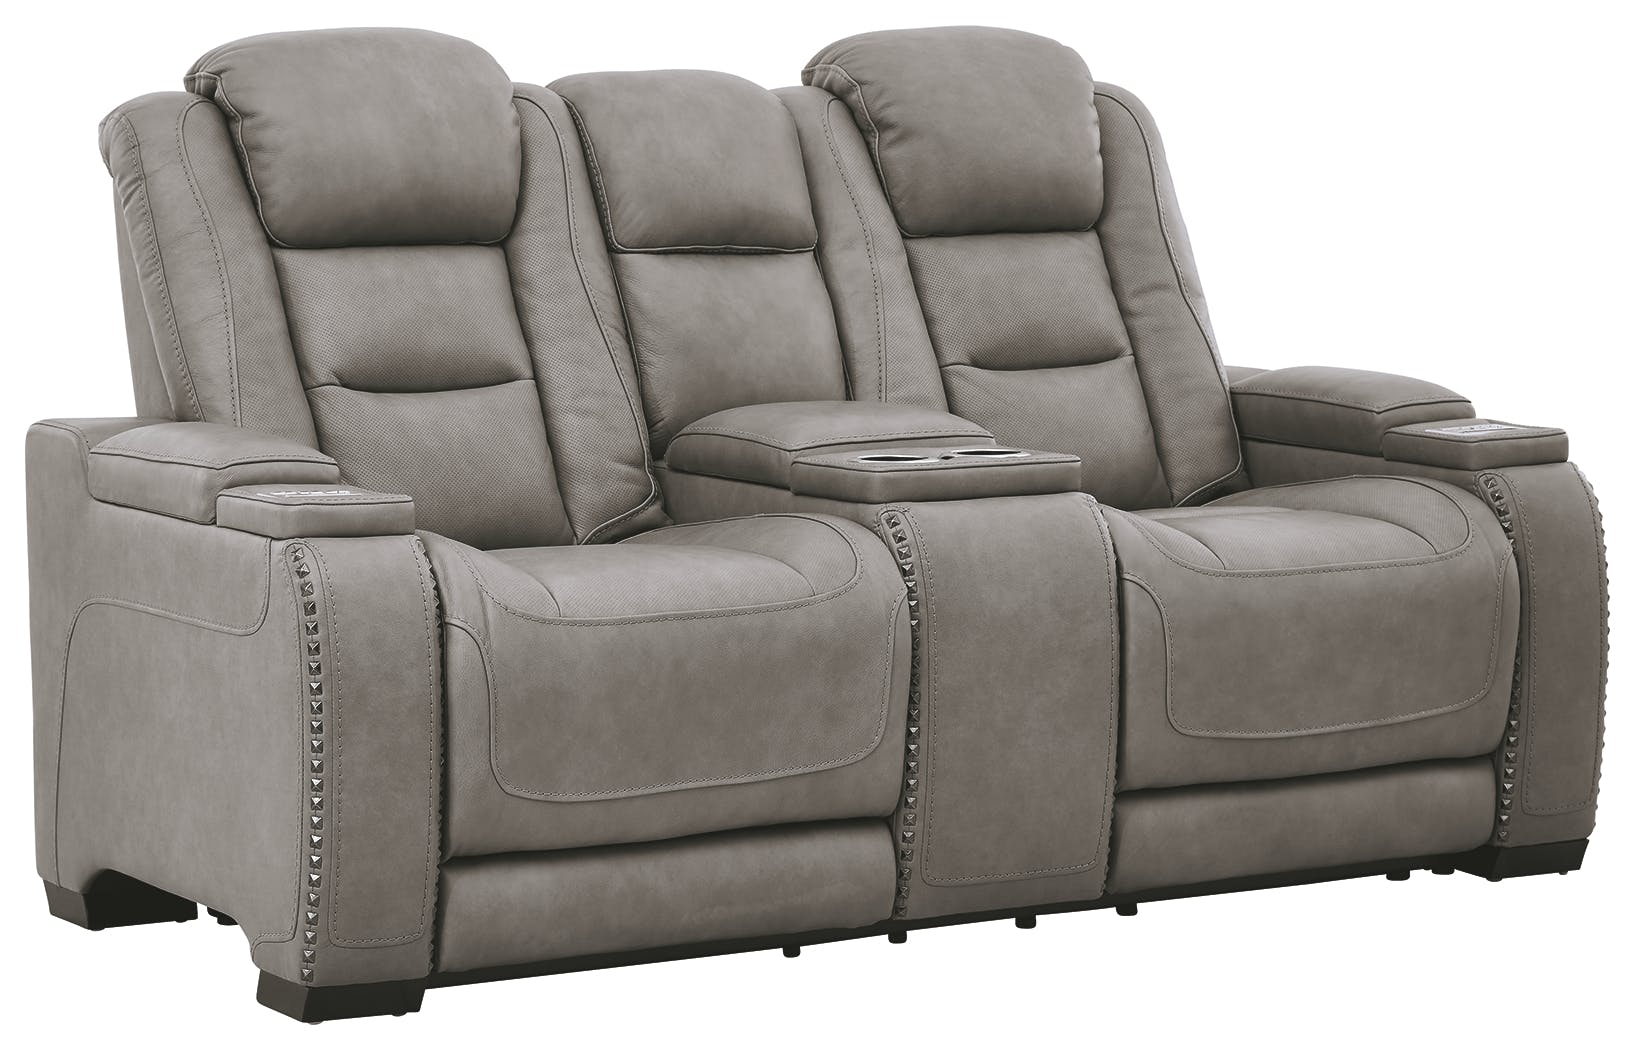 Signature Design By Ashley Living Room The Man Den Power Reclining Loveseat With Console U8530518